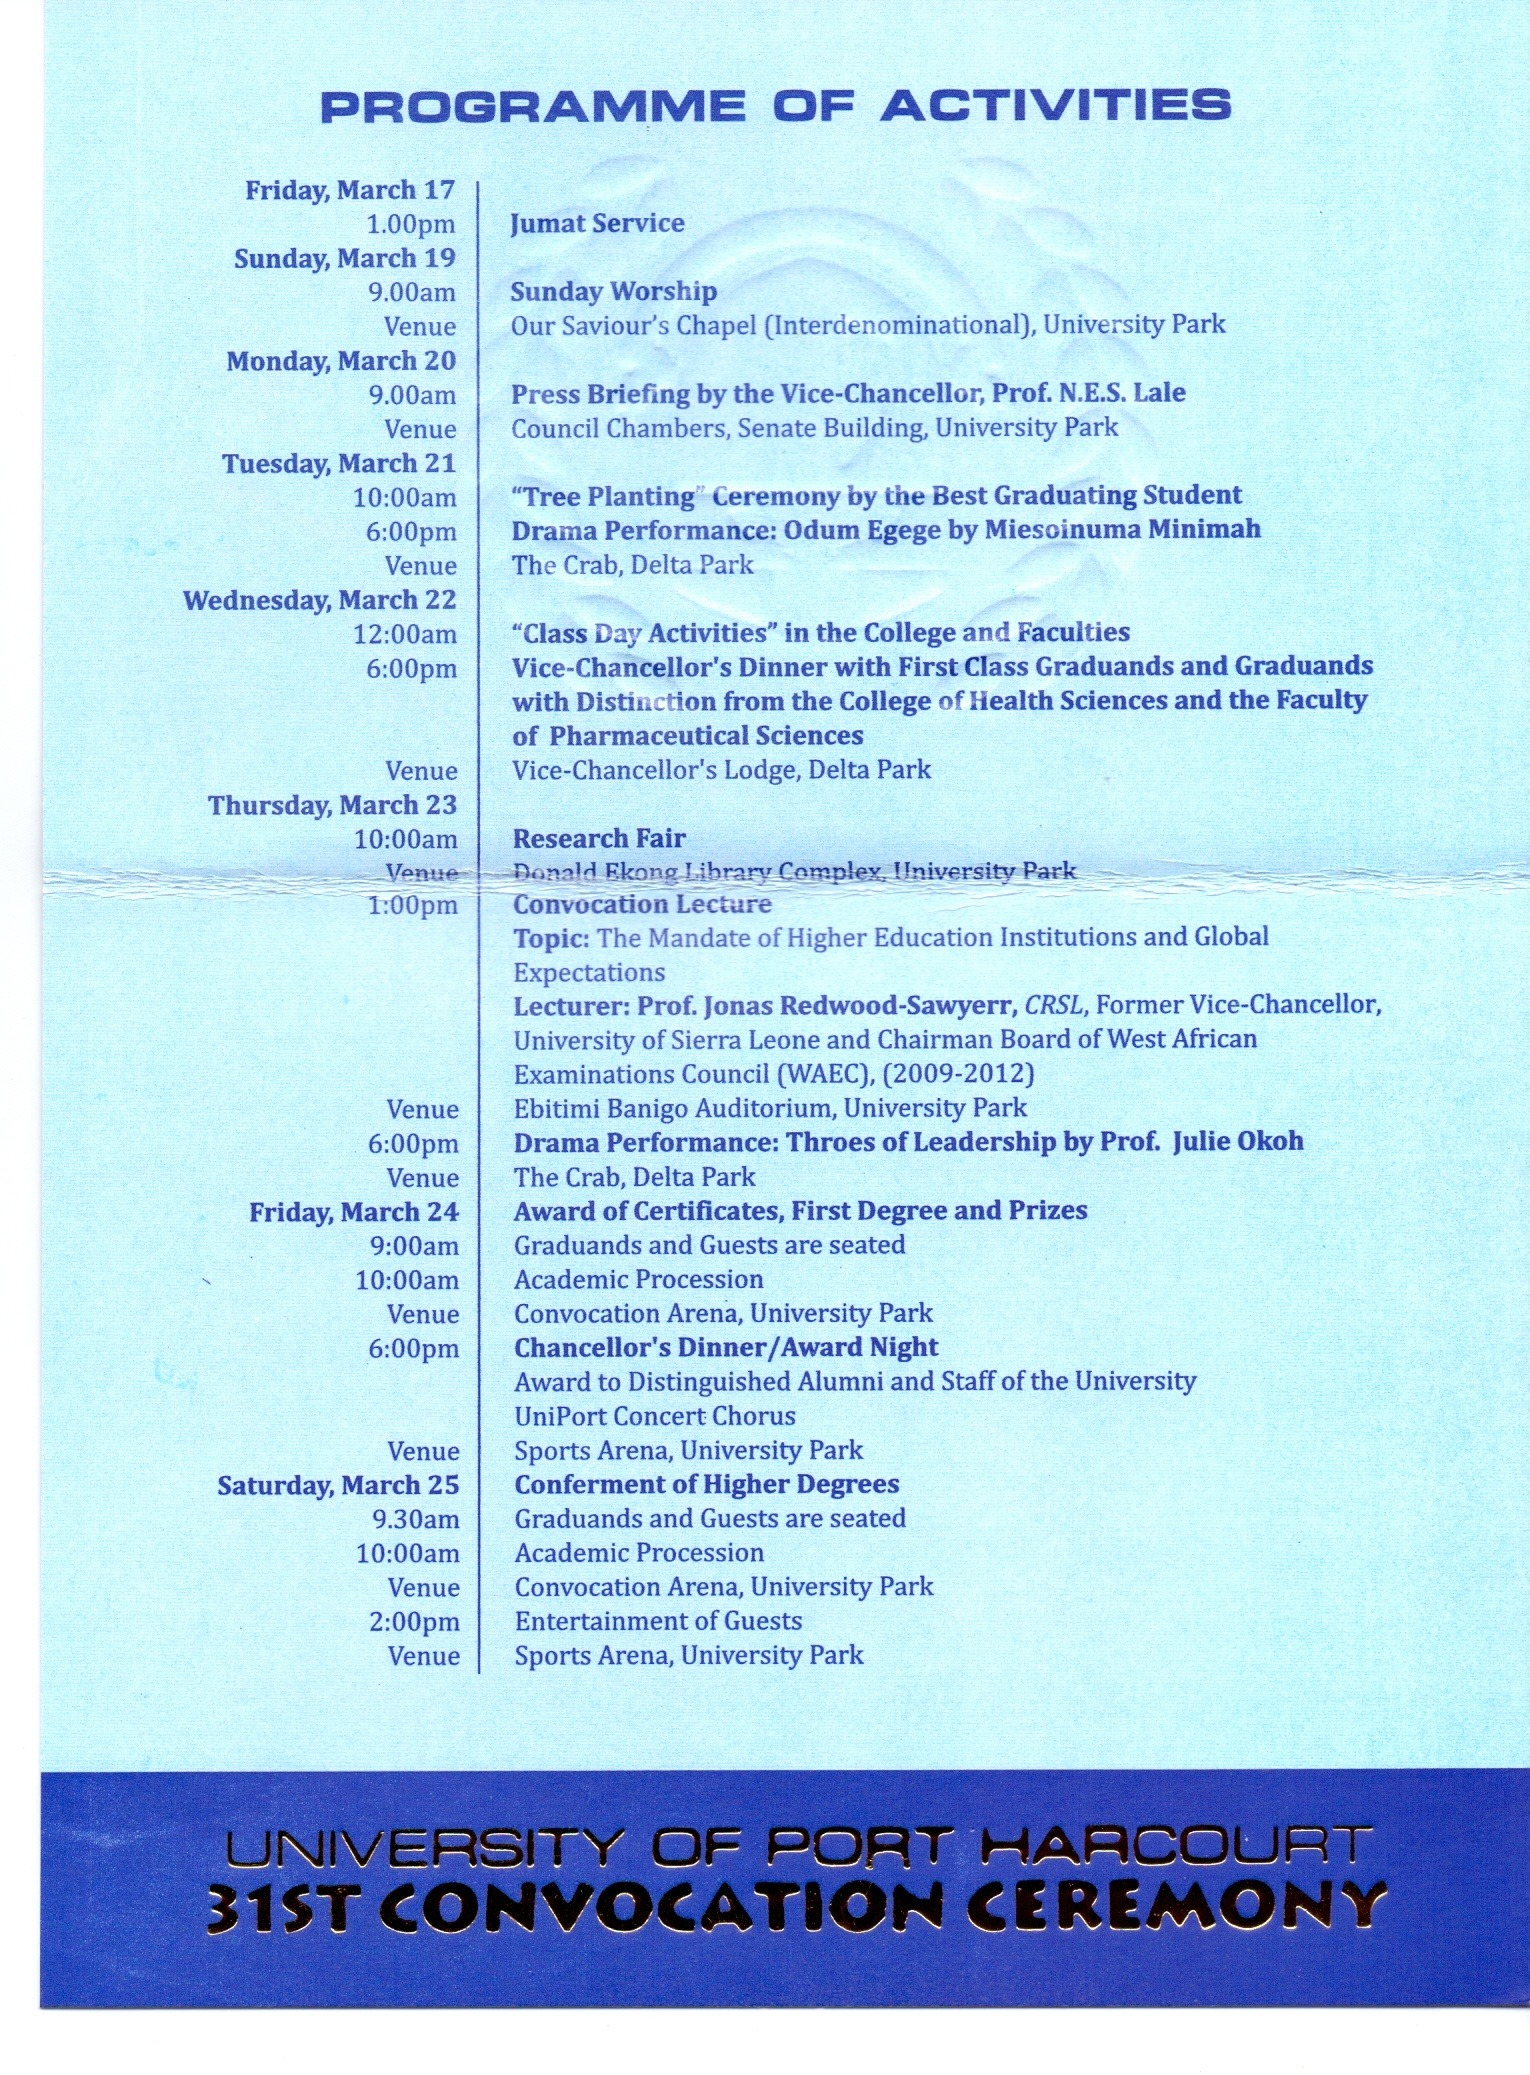 UNIPORT 31st Convocation Ceremony Programme of Events – 2017